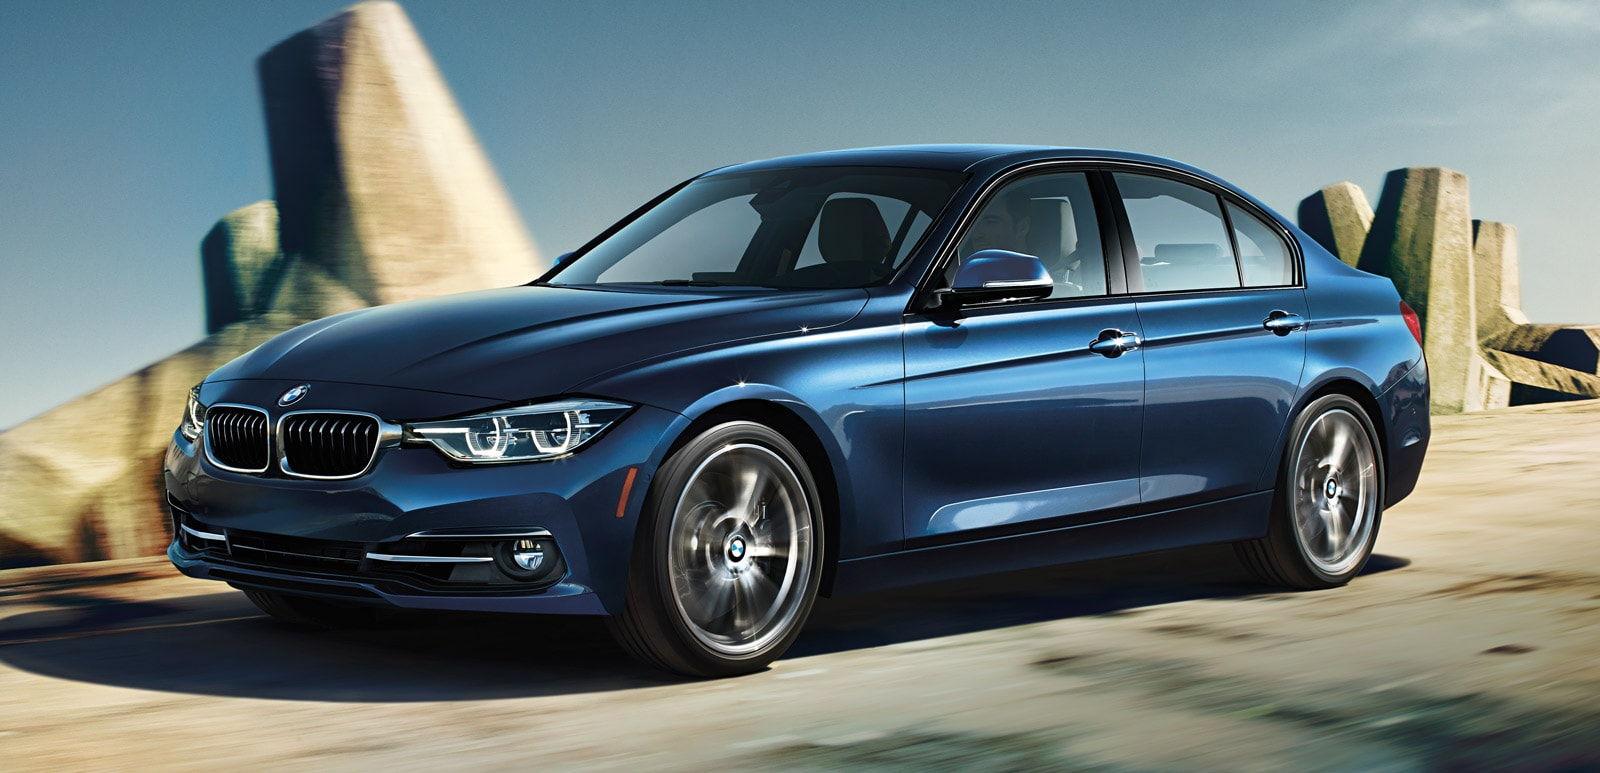 bmw 3 series sedan media gallery bmw north america. Black Bedroom Furniture Sets. Home Design Ideas